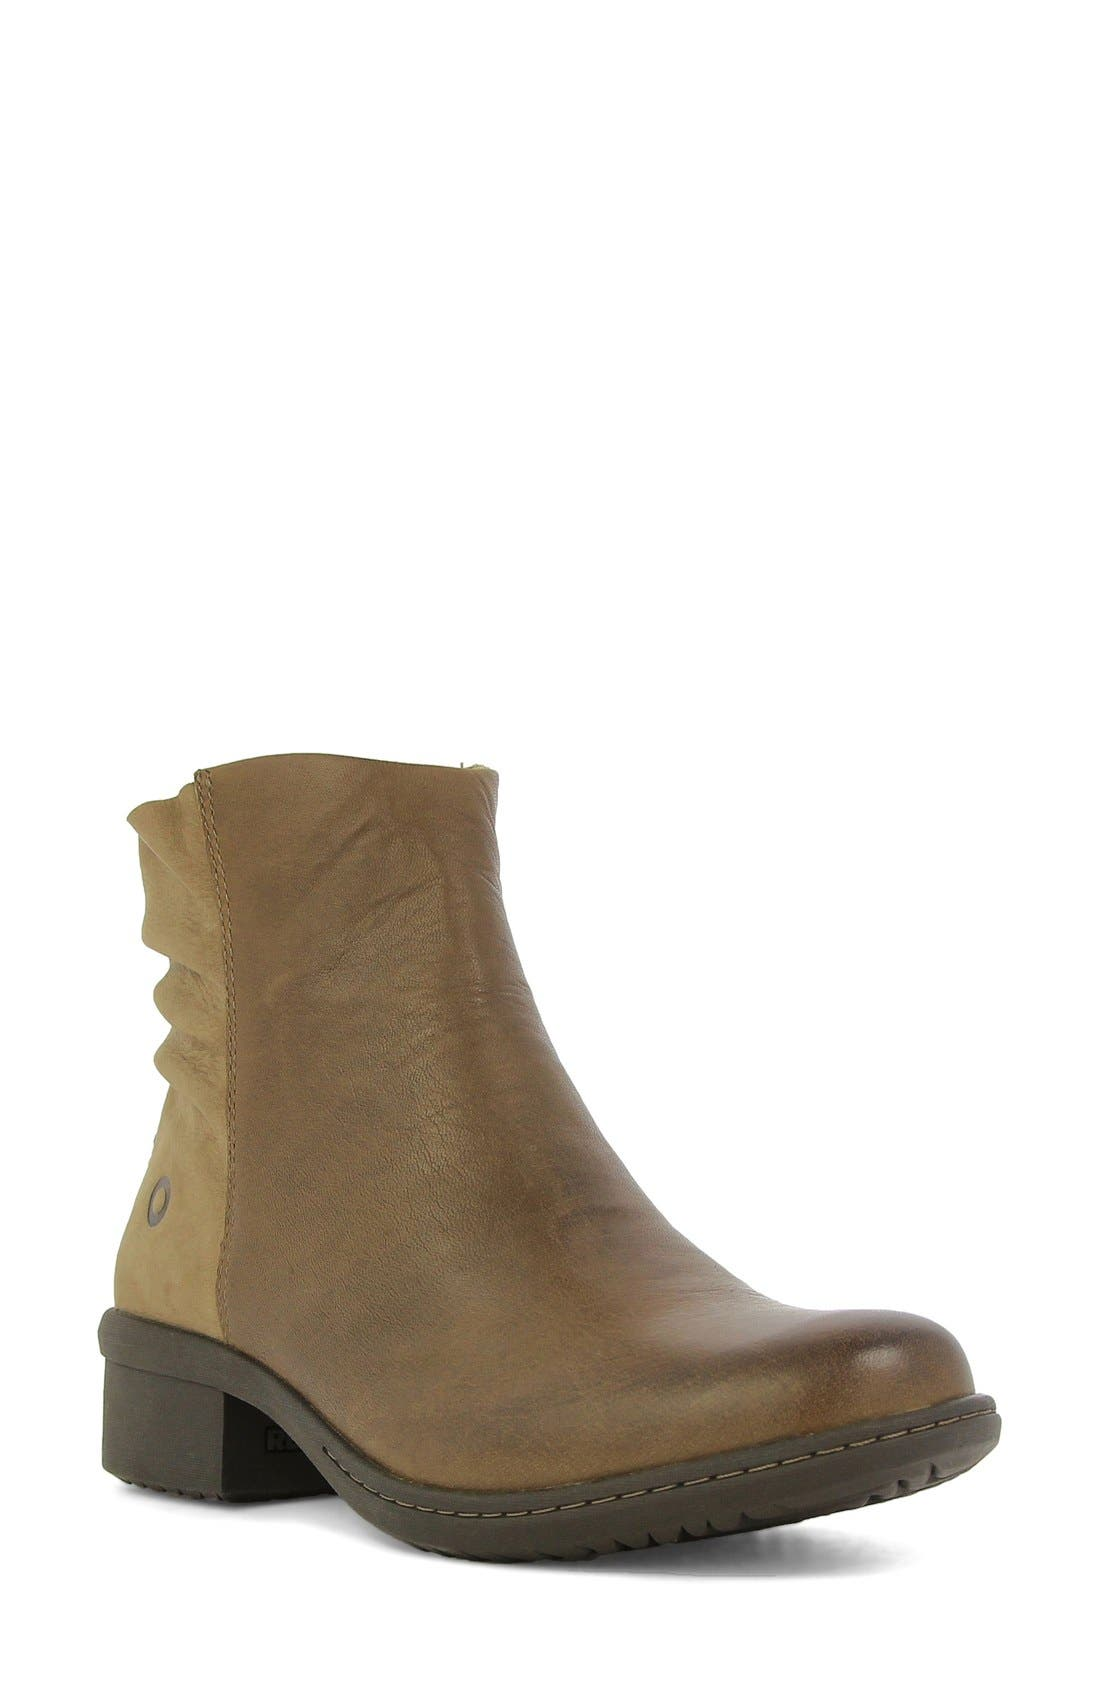 'Carly' Waterproof Short Boot,                         Main,                         color, Hazelnut Leather